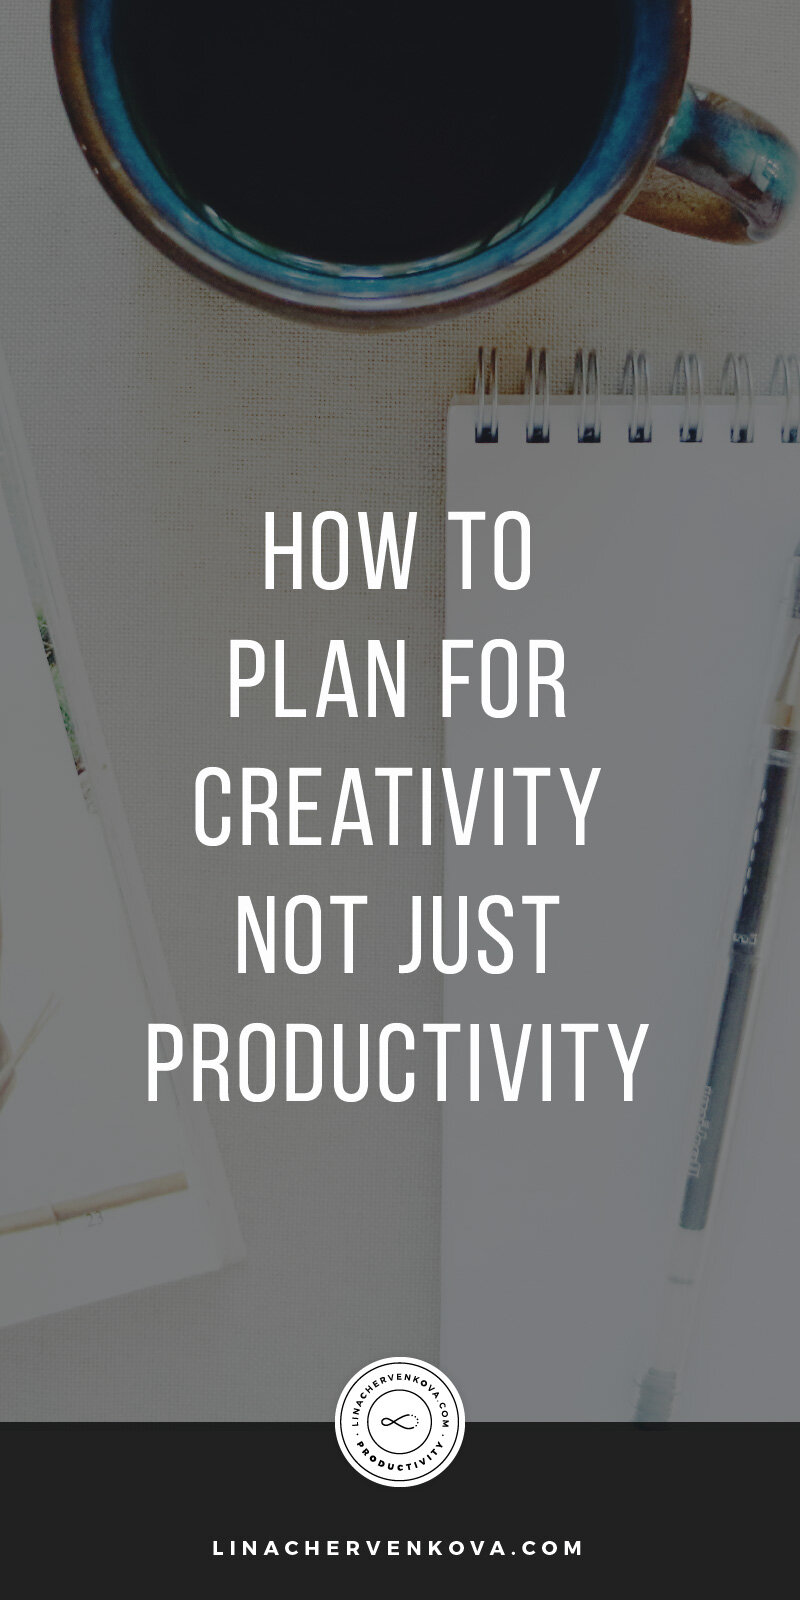 How to plan for creativity not just productivity